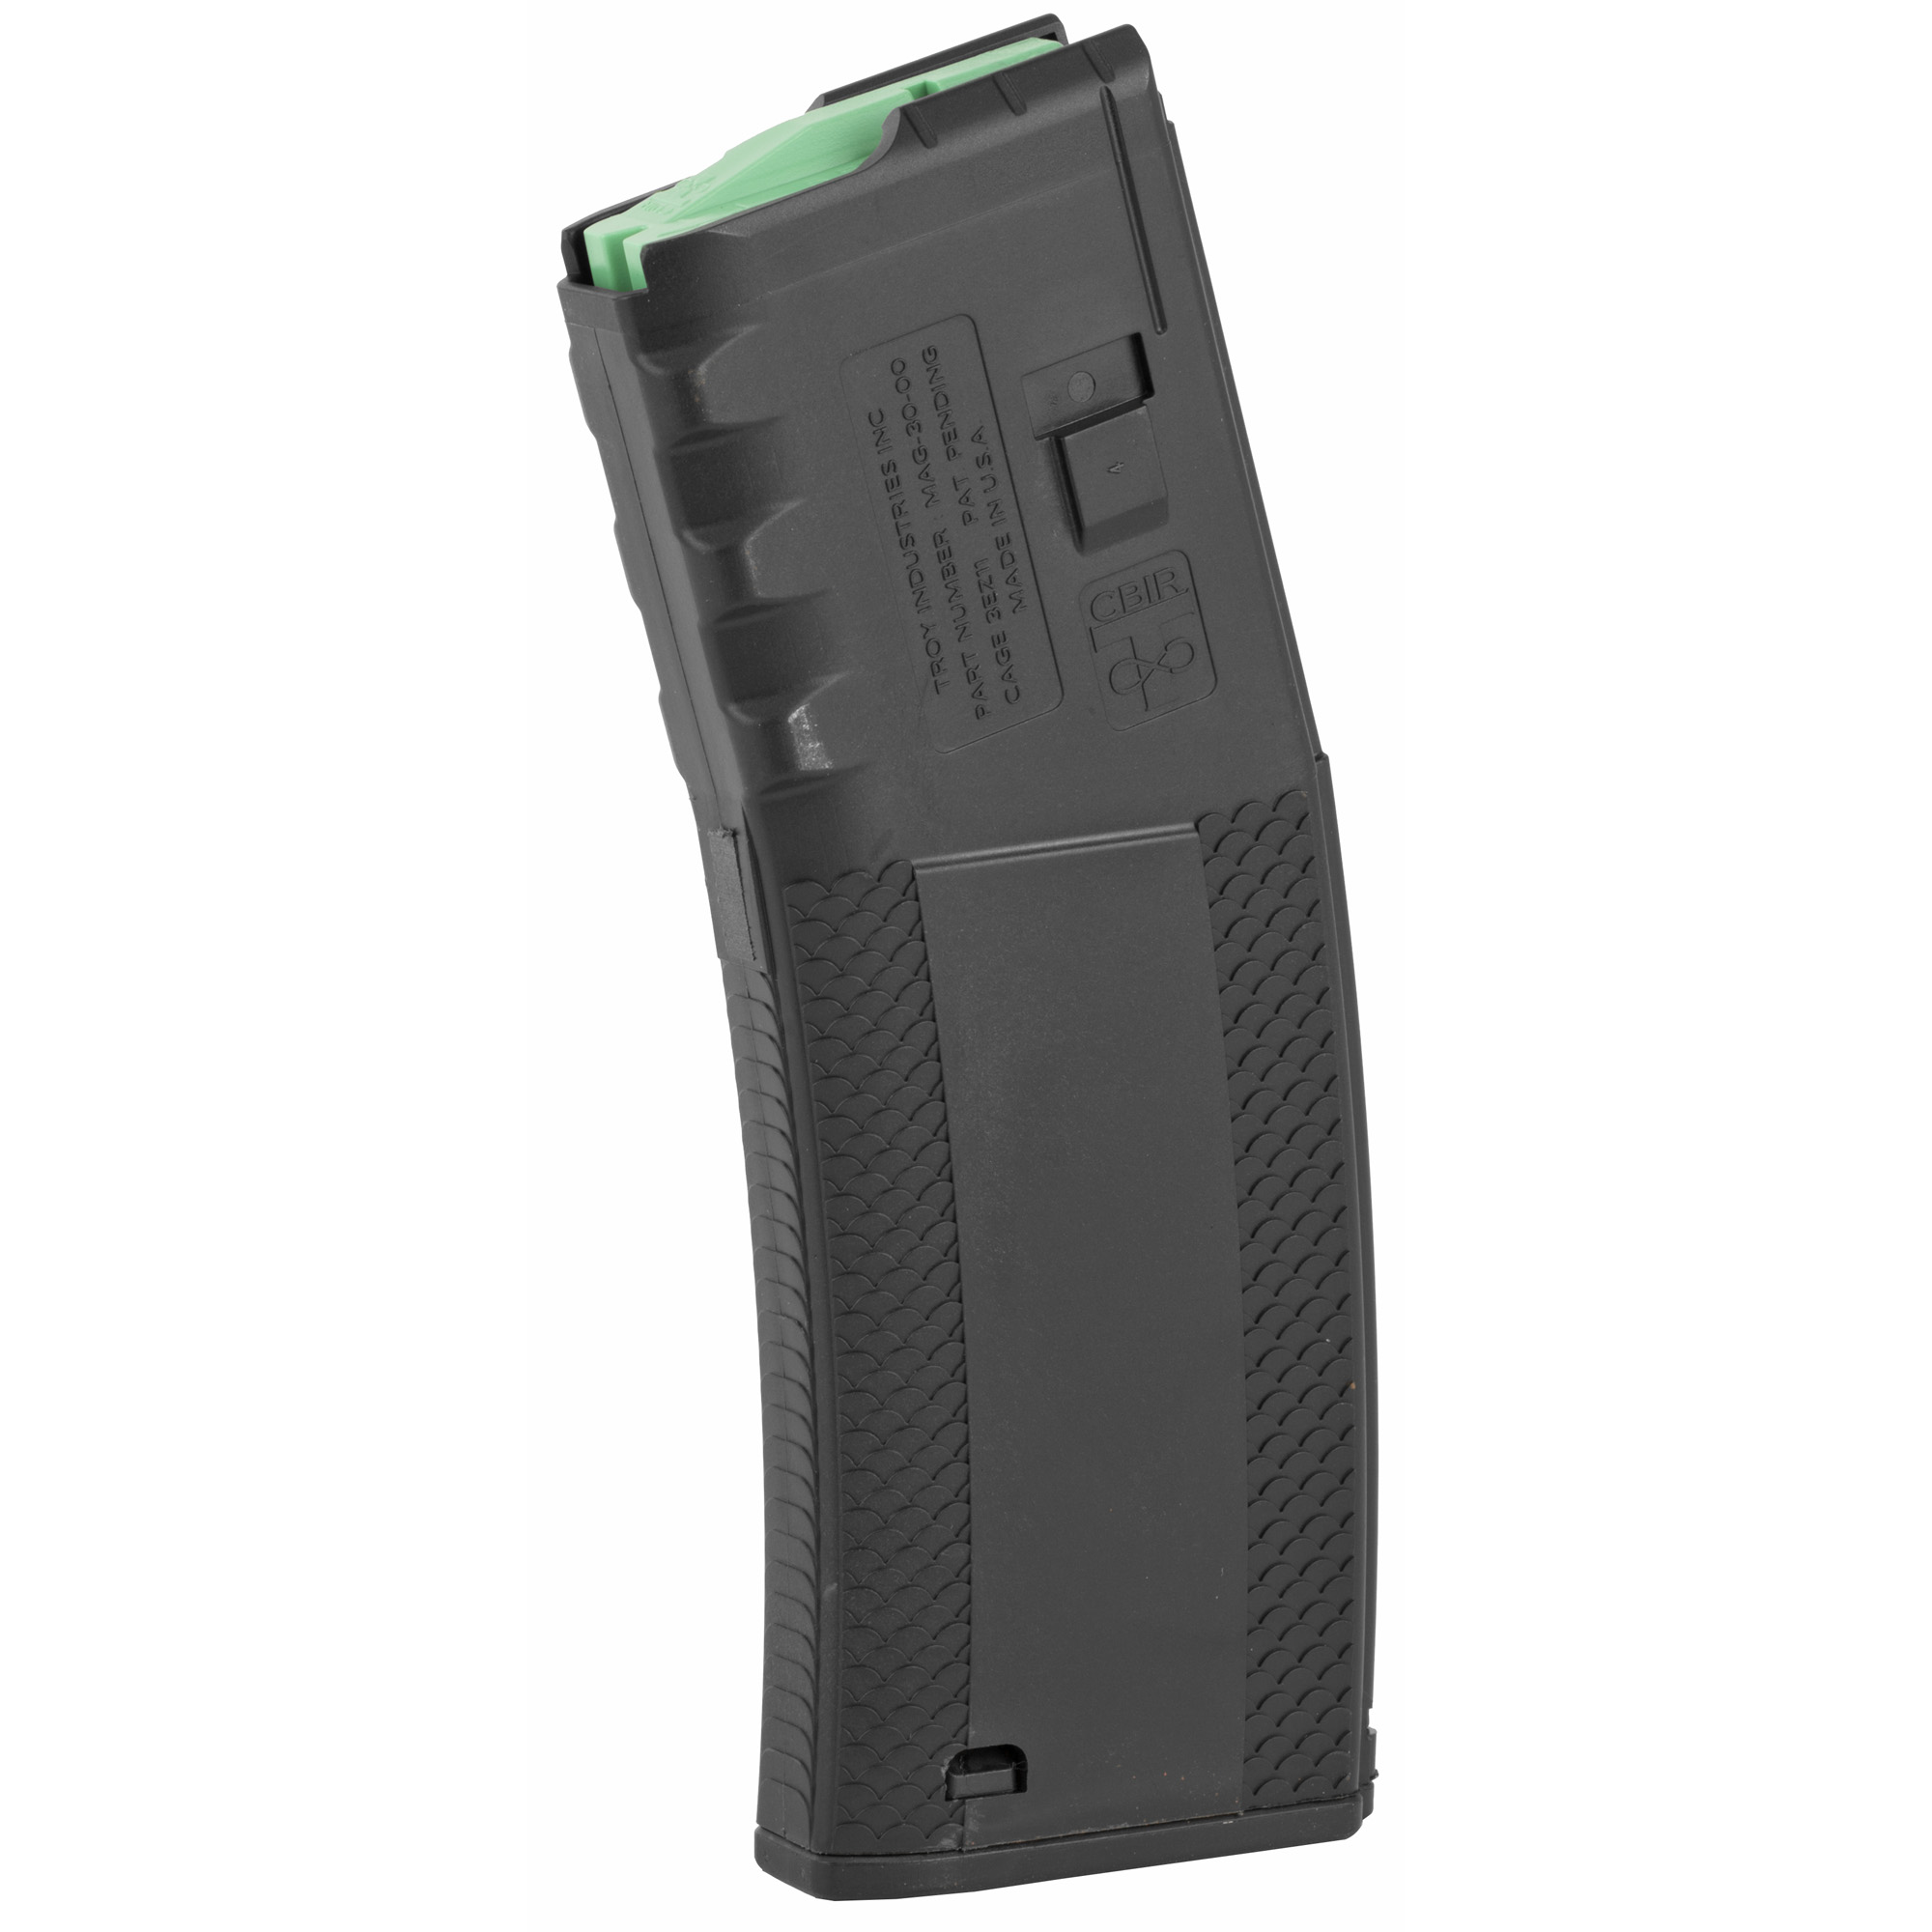 """The BattleMag is engineered to function flawlessly with all M4"""" M16/AR-15"""" HK416 and FN SCAR rifles and carbines. An aggressive scale pattern provides the ultimate magazine grip in dirty or wet conditions. A bolstered floor plate is set flush to eliminate the BattleMag from catching on other magazines or creating unnecessary bulk when stacked or pulled from a pouch. The reinforced feed lips and anti-tilt follower do not require a clamp to keep the feed lips from spreading when kept loaded for extended periods of time."""